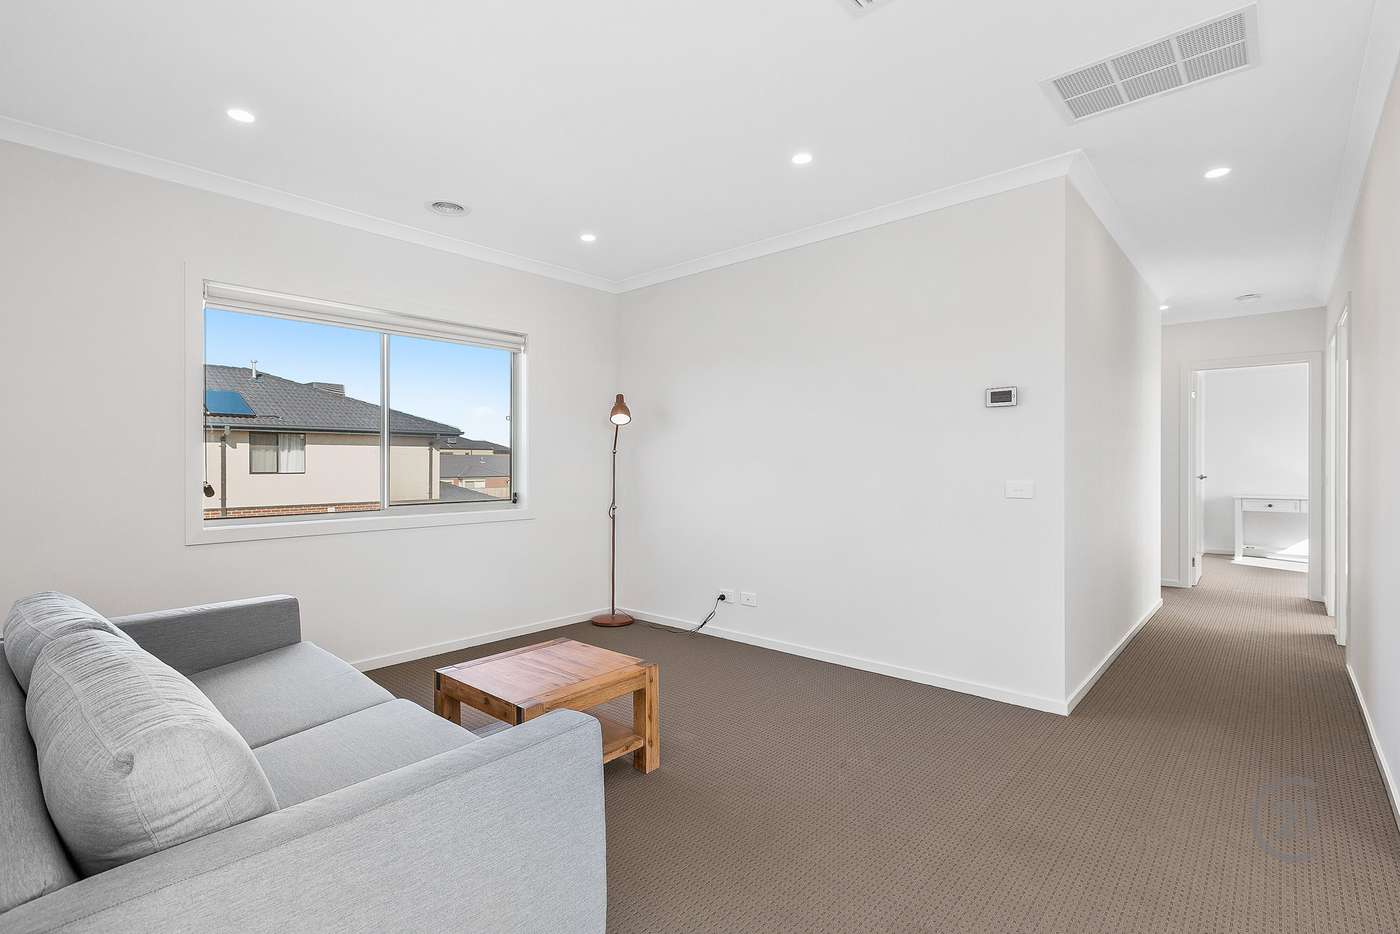 Sixth view of Homely house listing, 6 Hutchence Drive, Point Cook VIC 3030